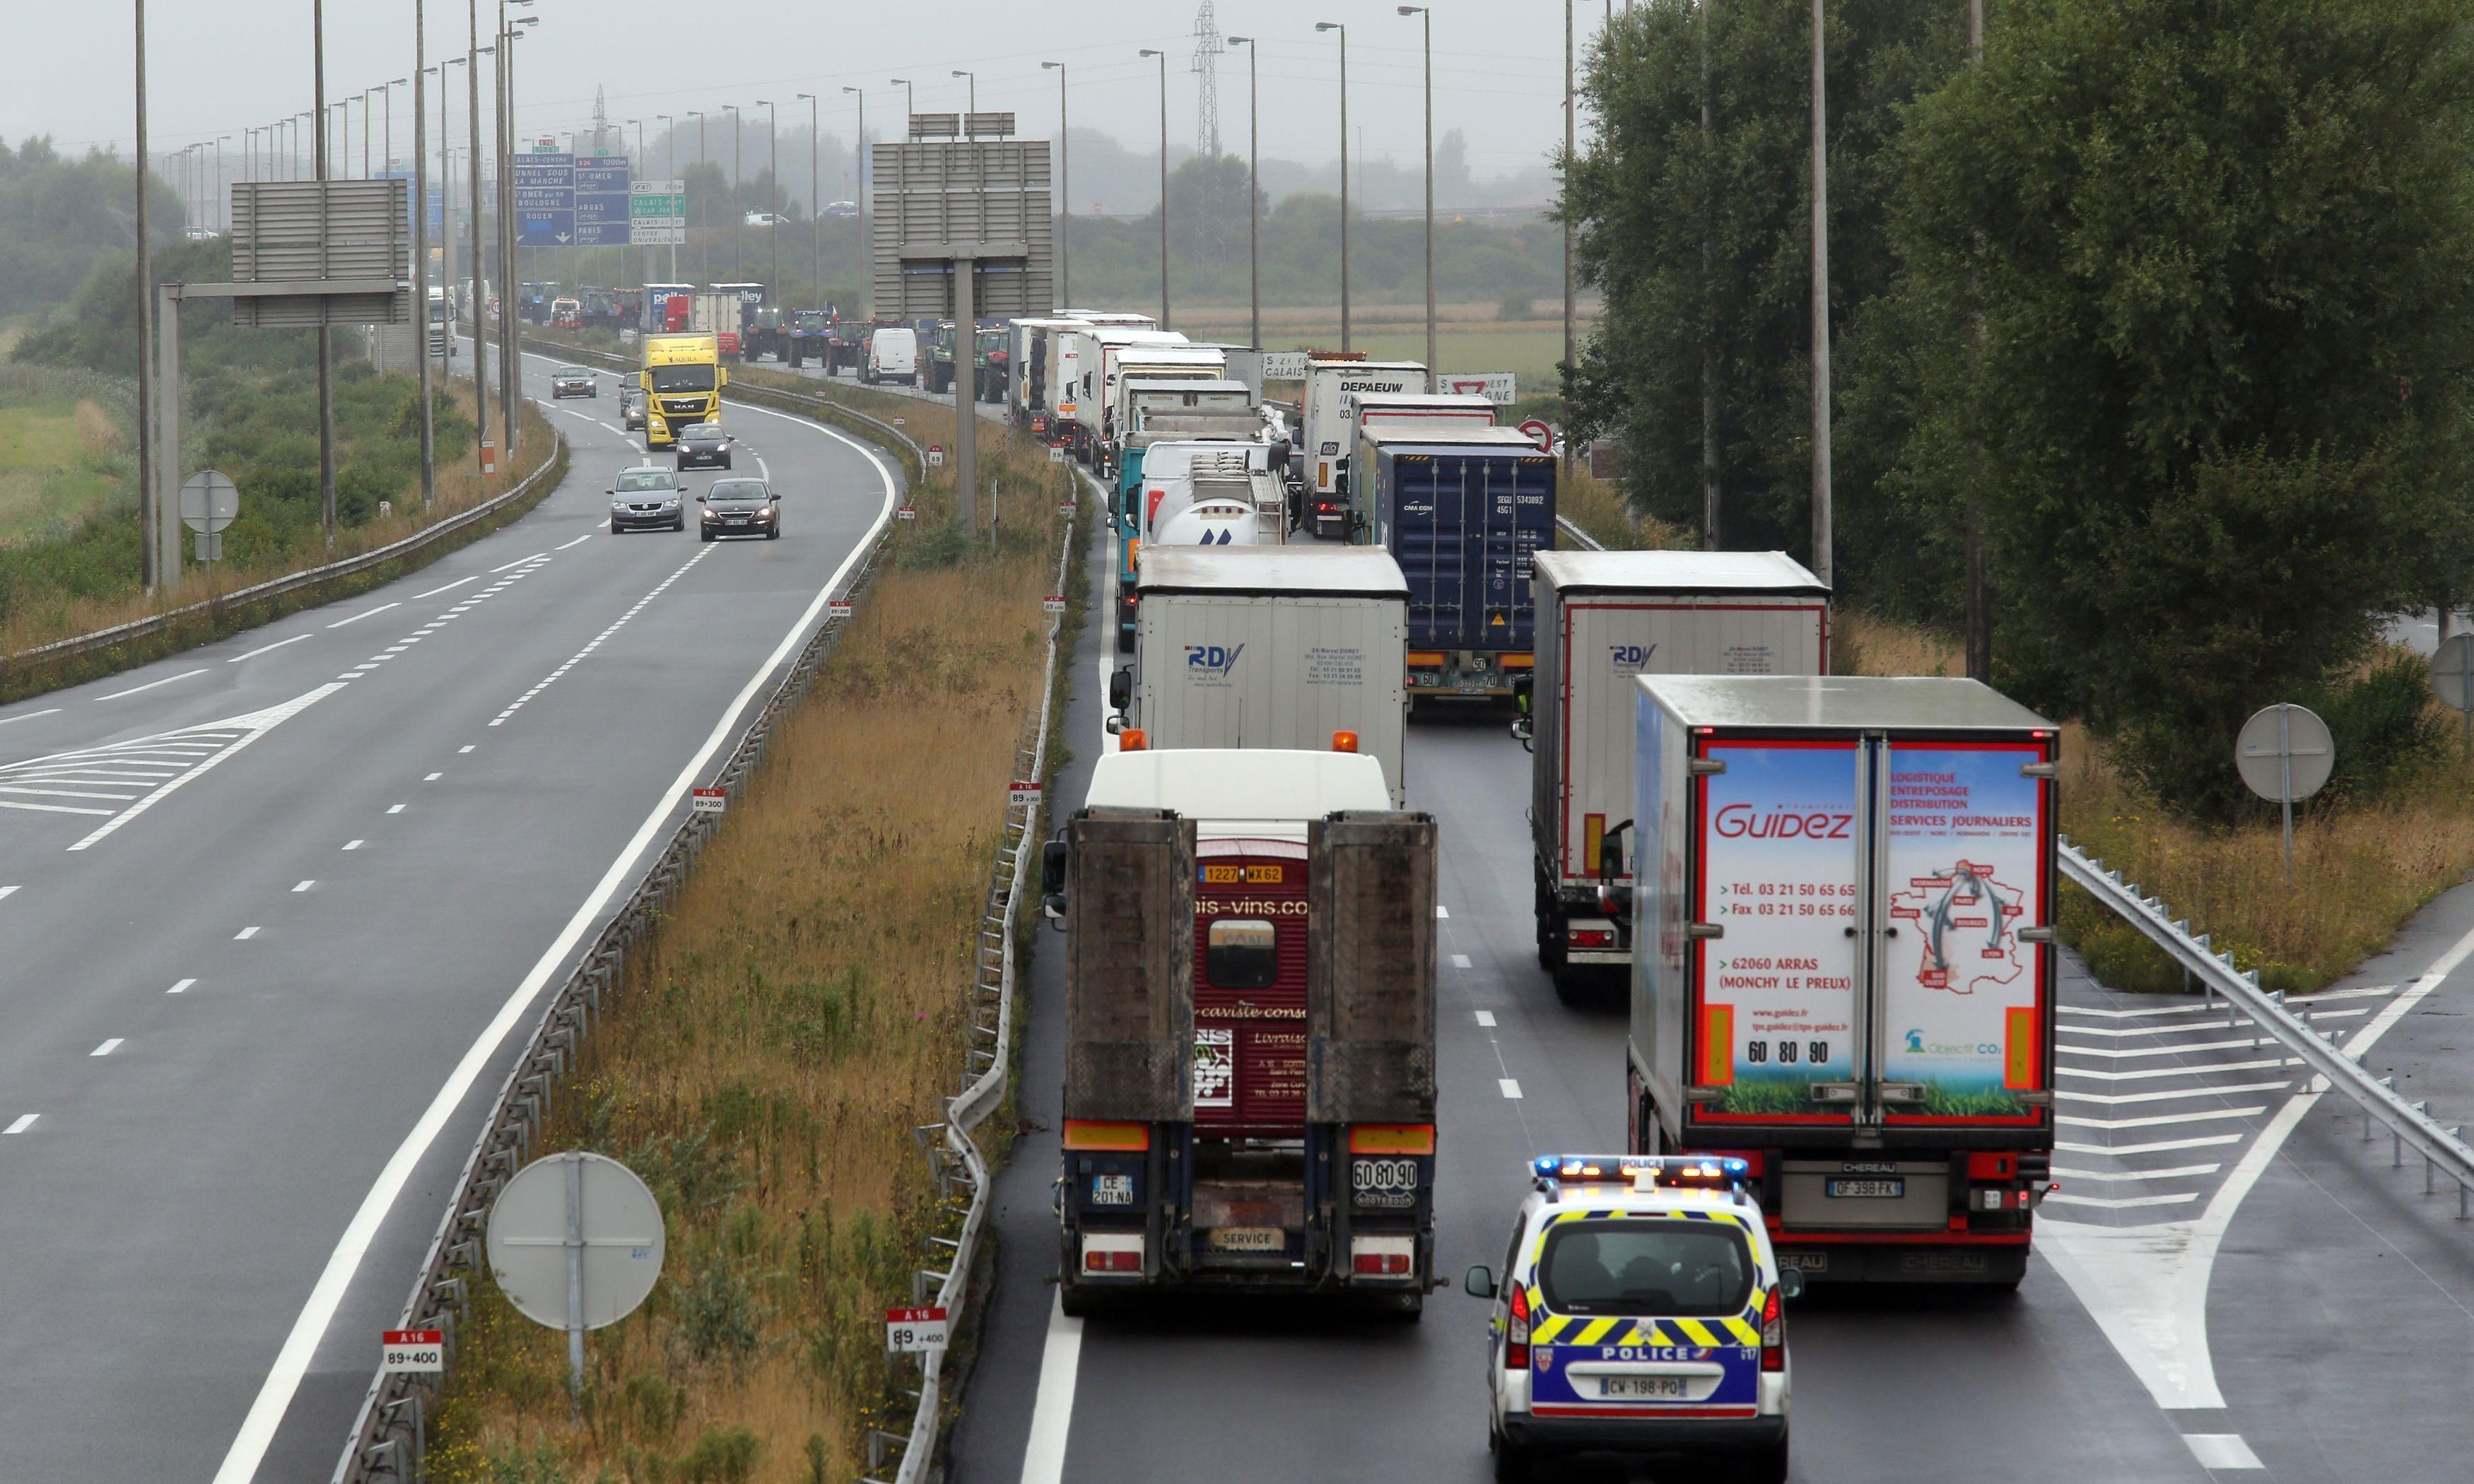 The Essex lorry deaths throw up so many questions. It's vital we ask the right ones